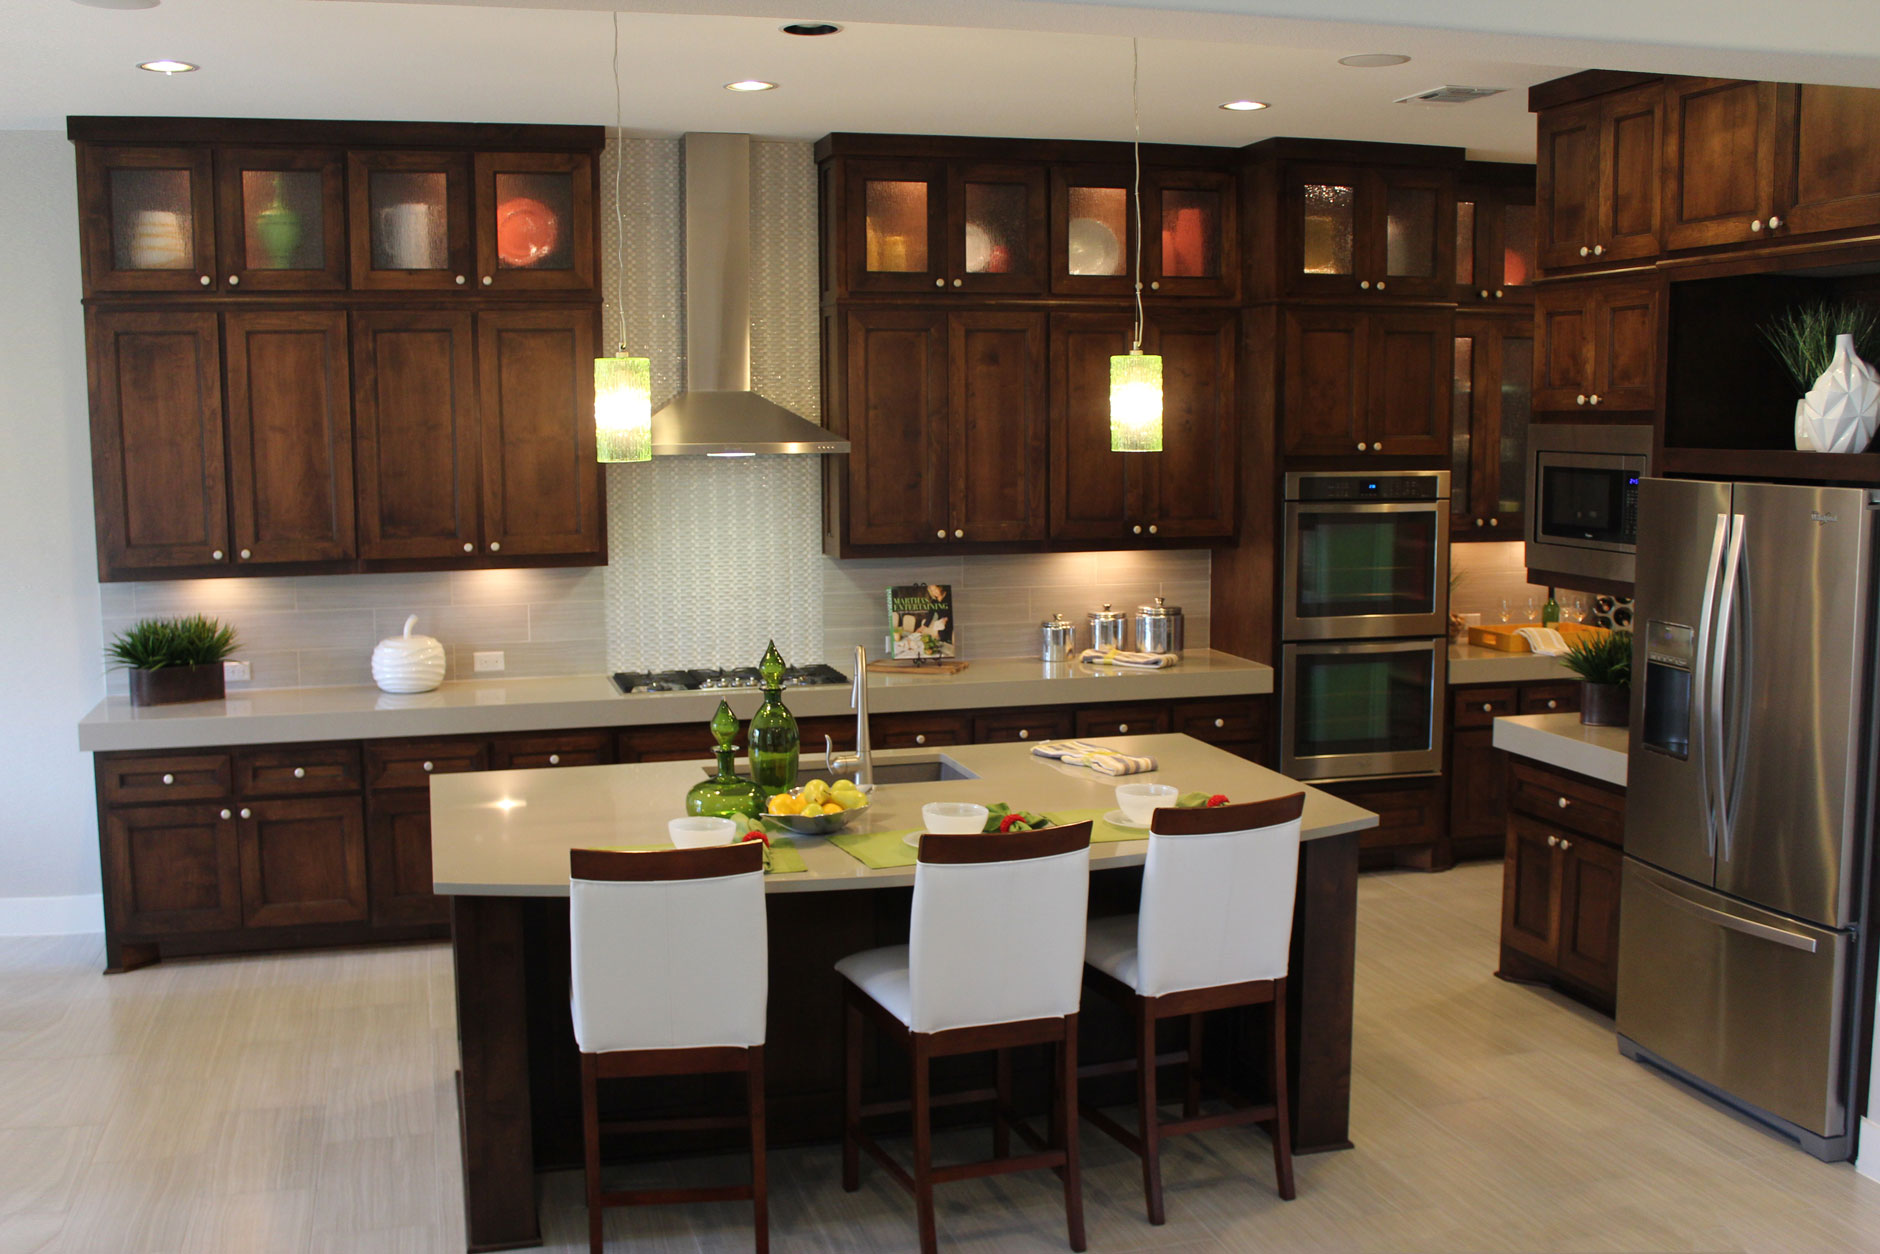 Kitchen cabinet 4 by Burrows Cabinets with Terrazzo doors